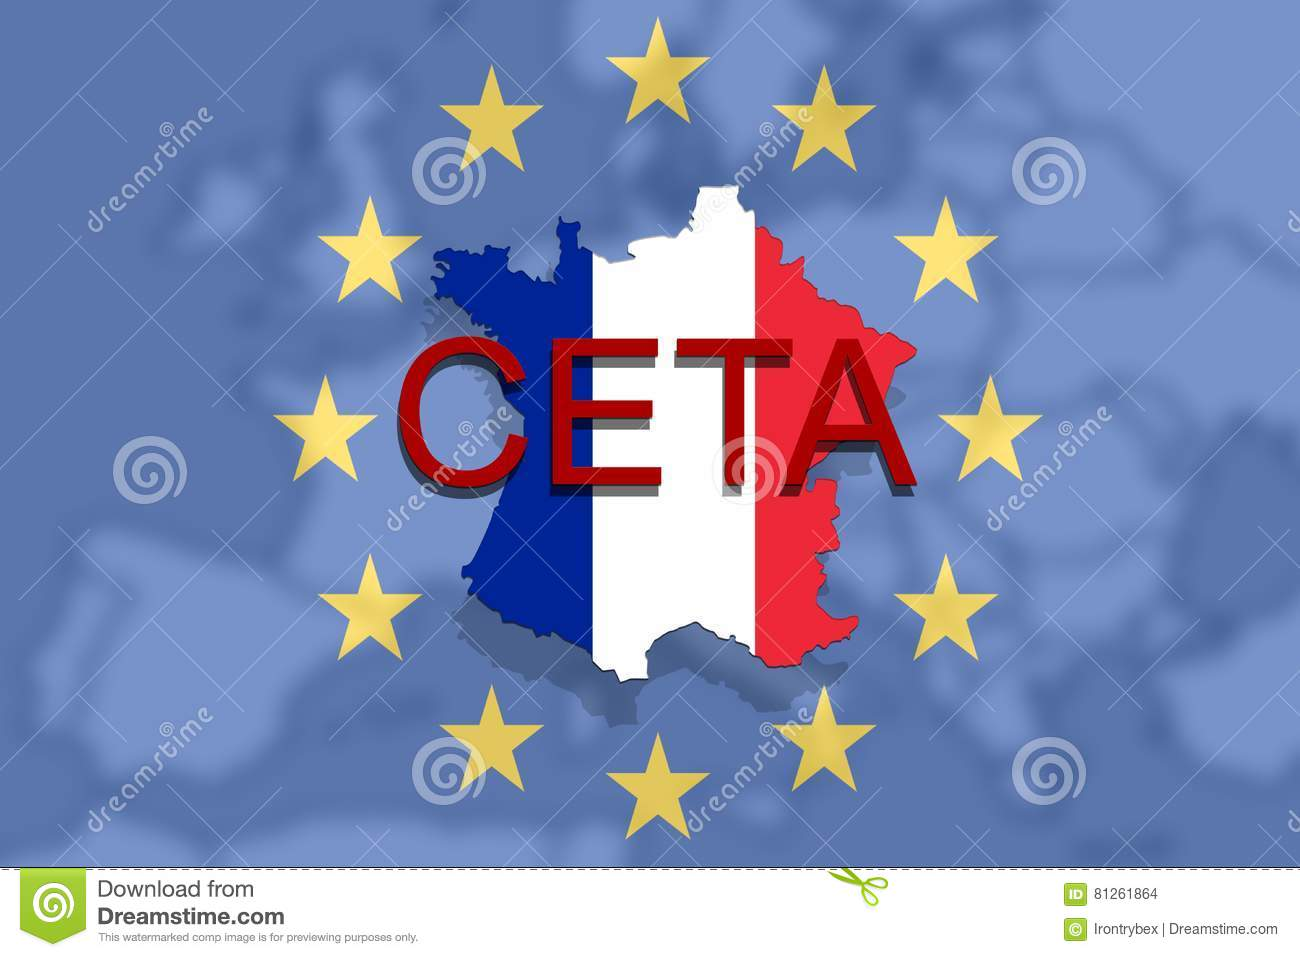 Ceta Comprehensive Economic And Trade Agreement On Euro Union And